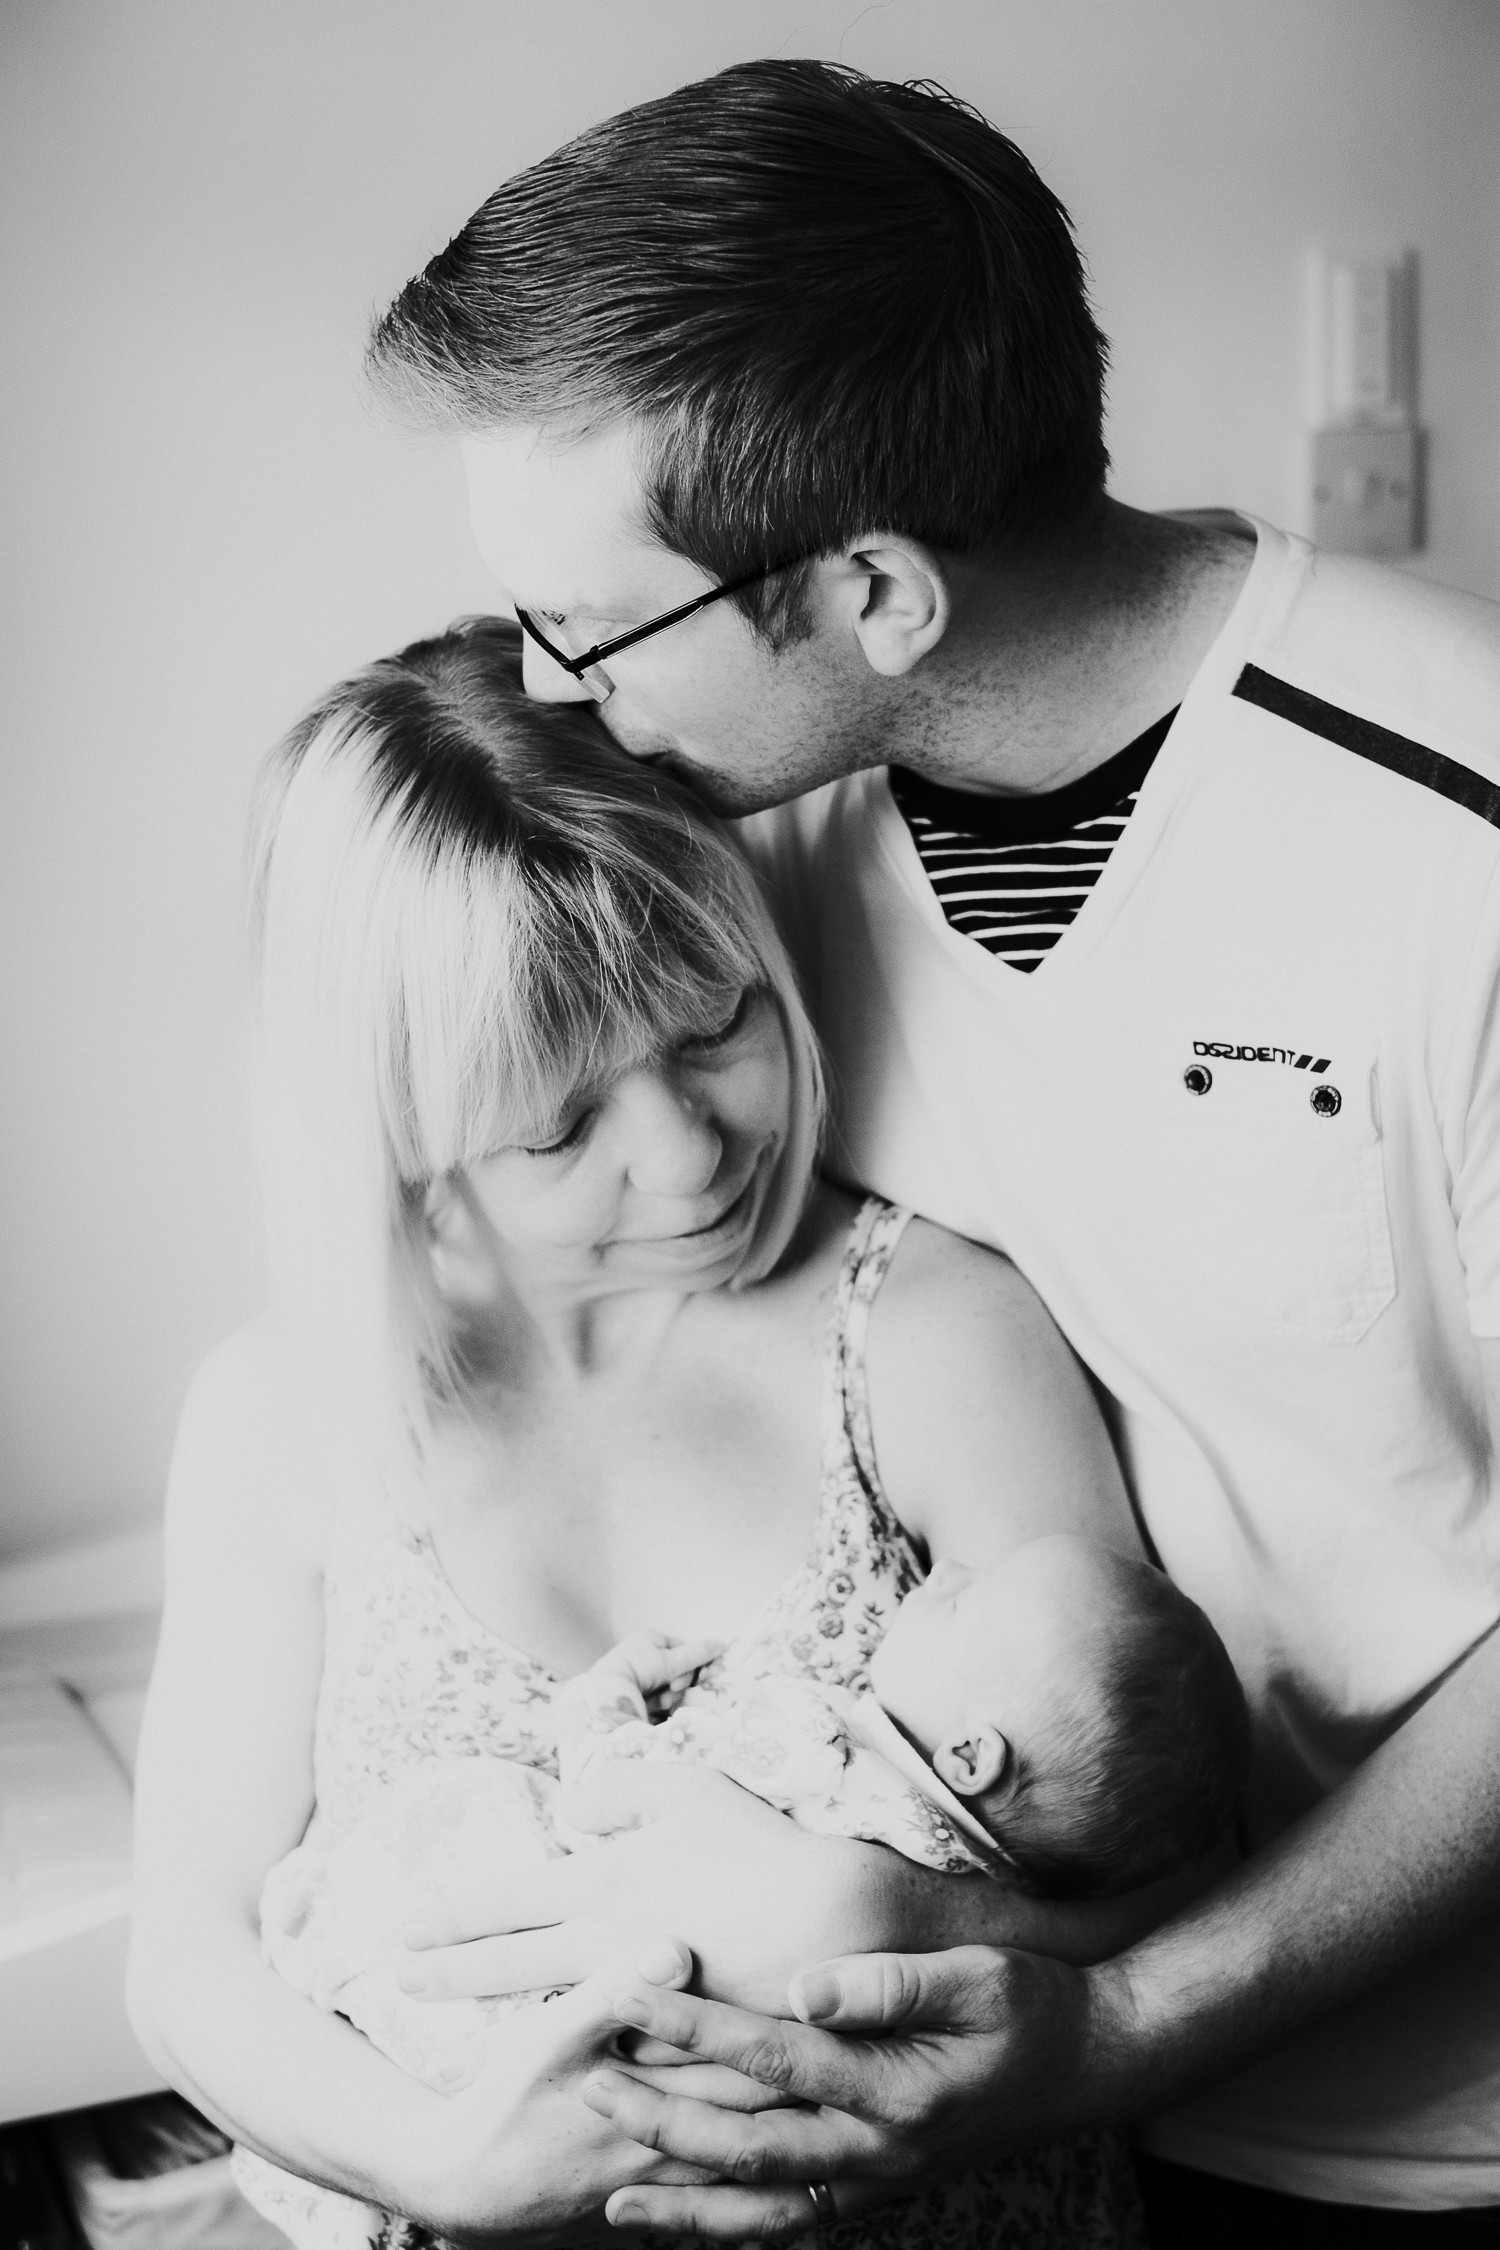 surrey lifestyle newborn photography new parents holding baby daughter in nursery